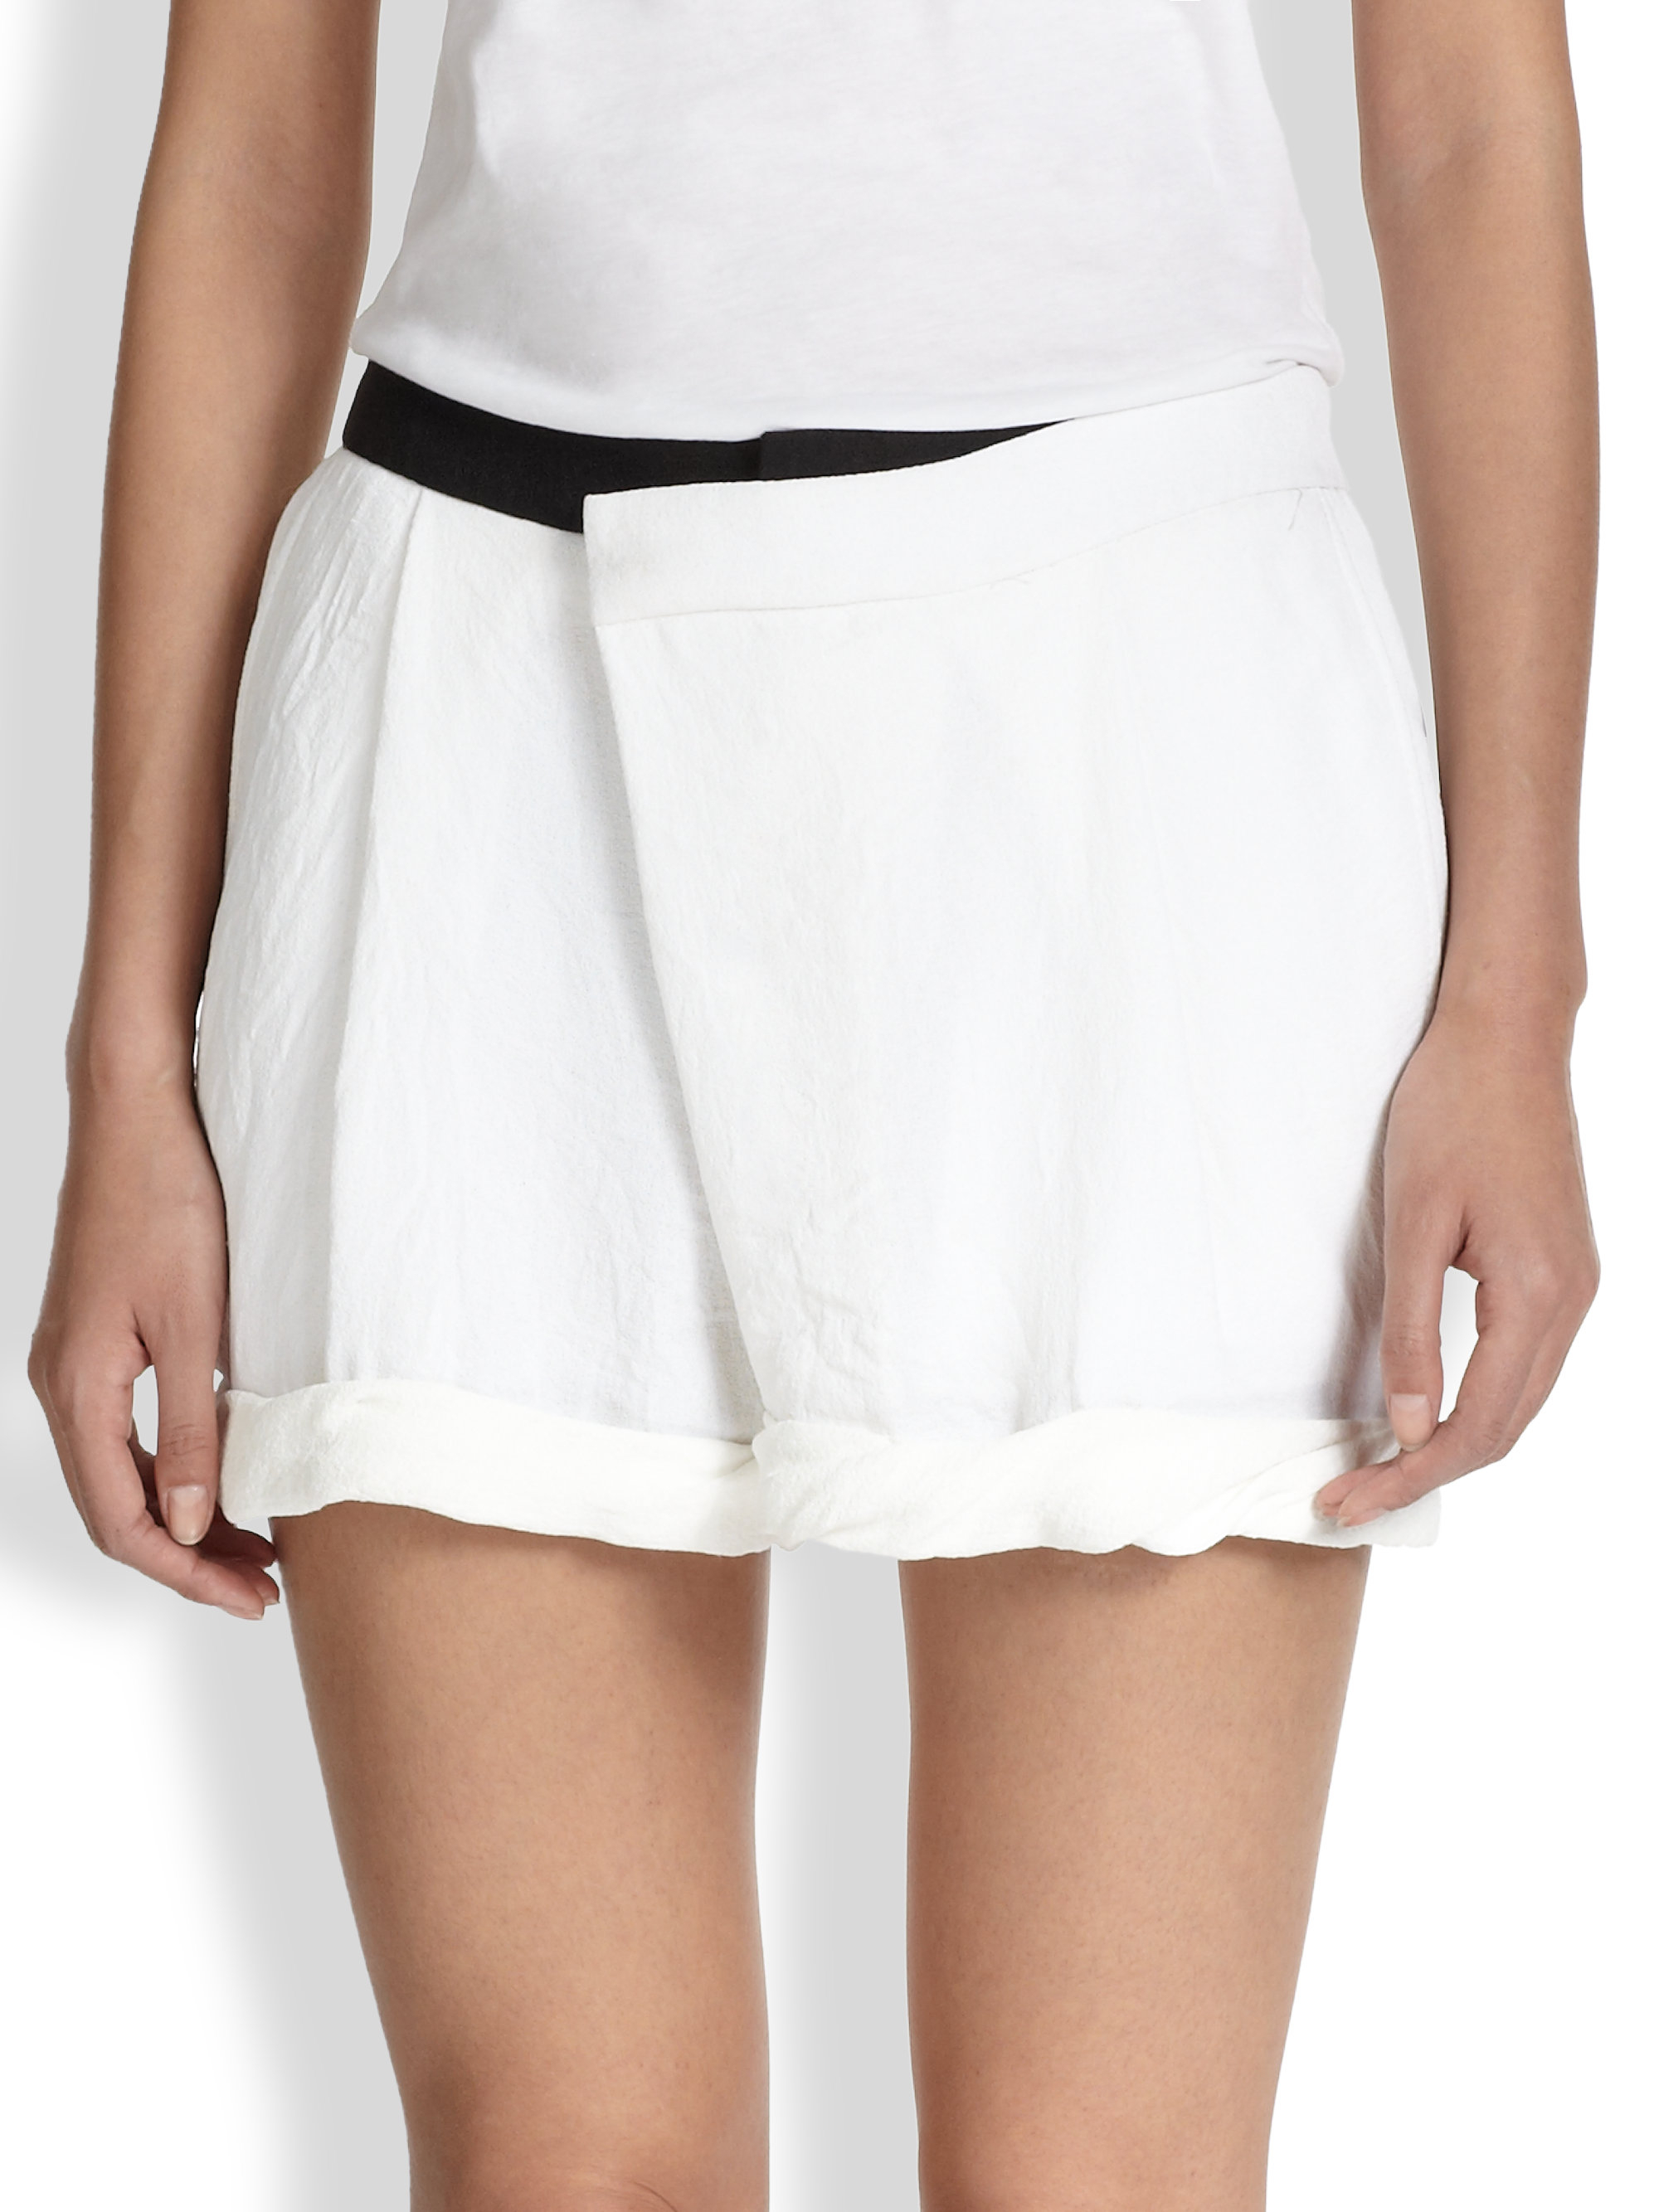 Lyst - Helmut Lang Drapefront Origami Shorts in White - photo#7